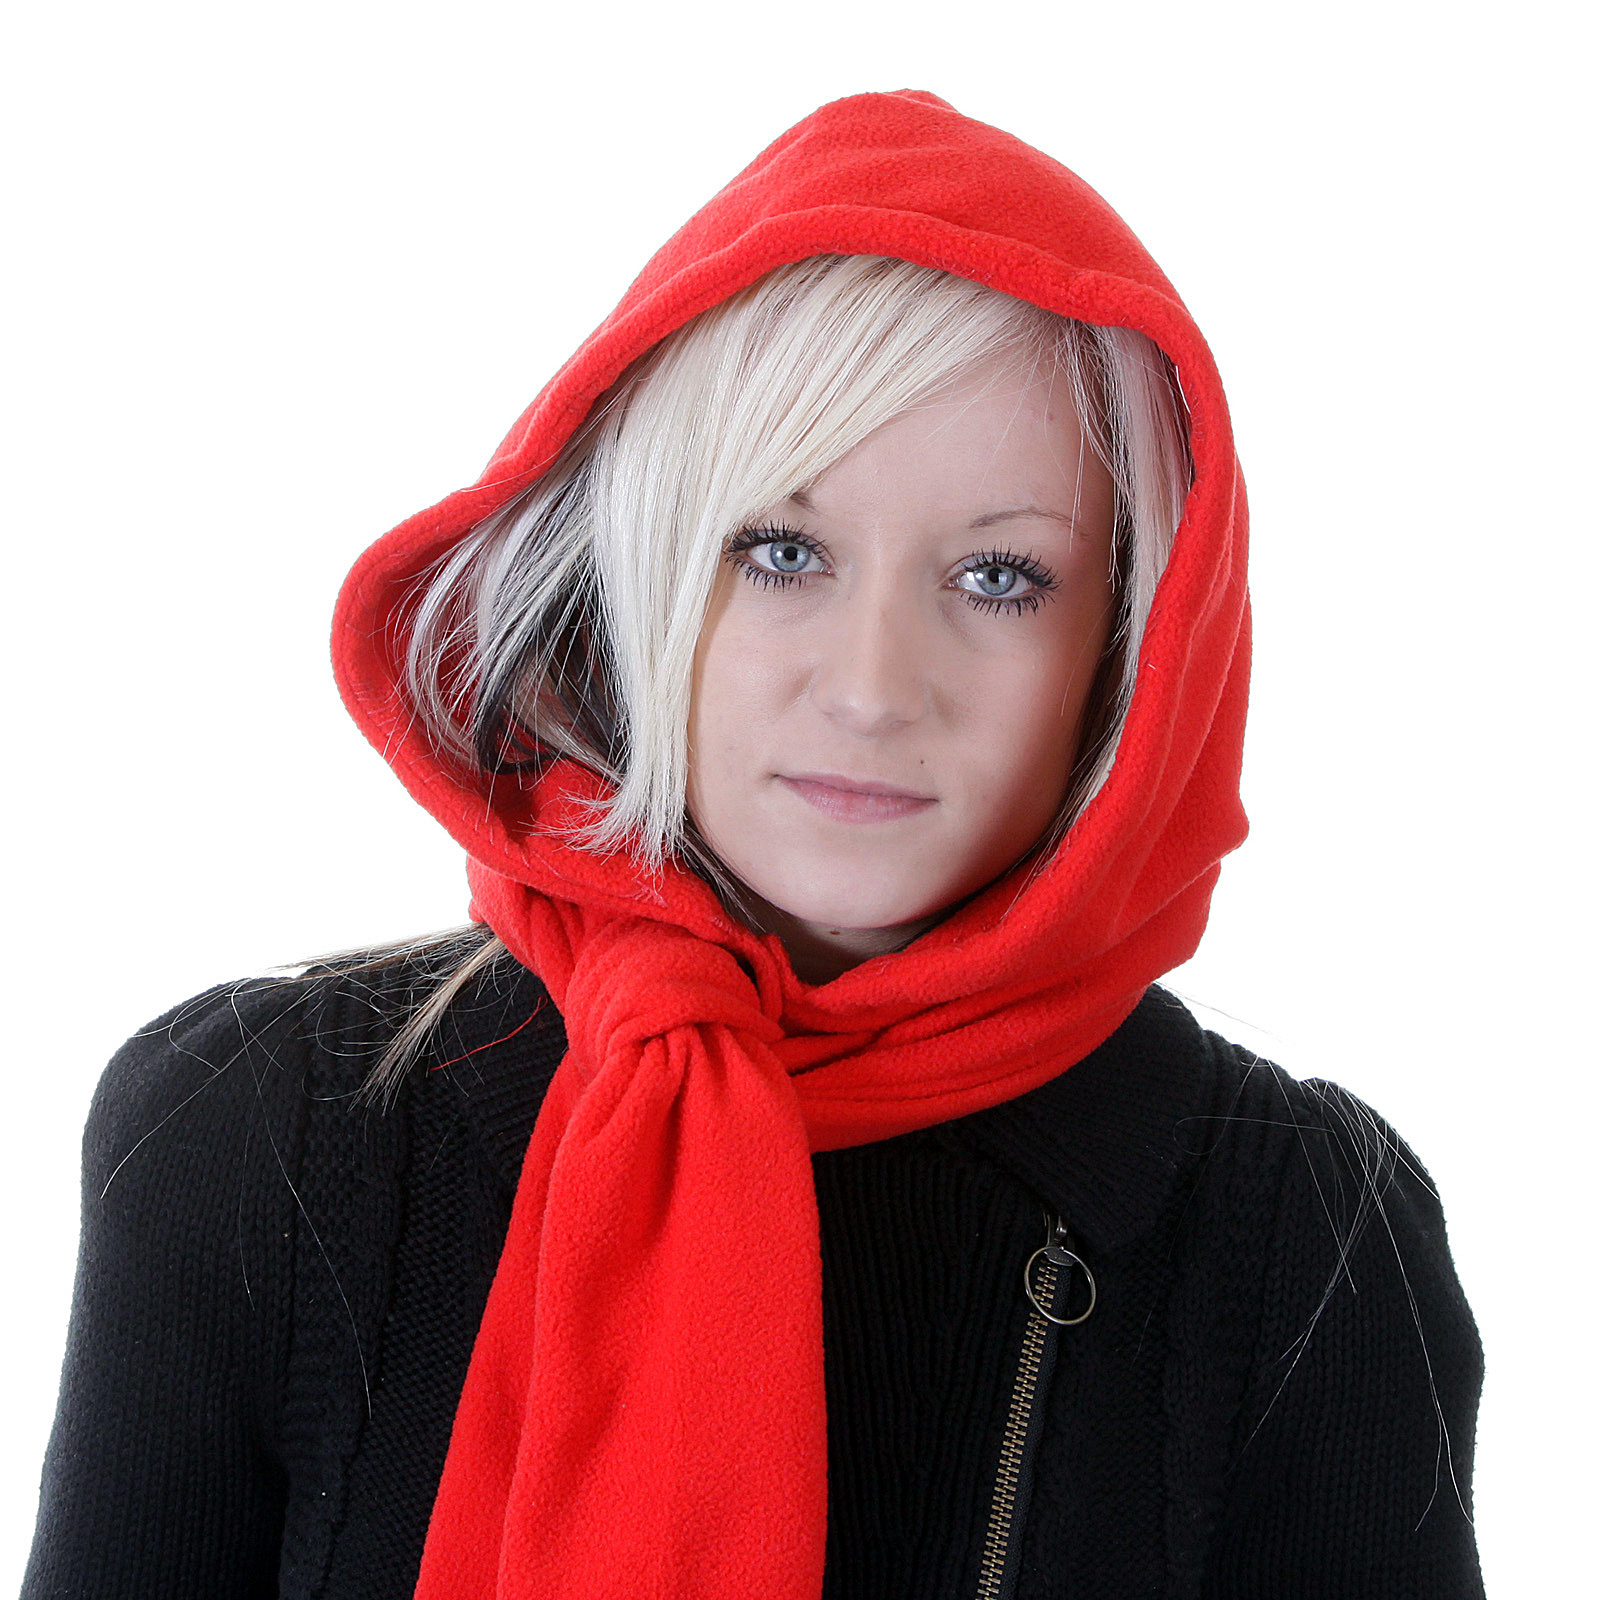 Discover the latest scarf and snood styles with ASOS. Shop from a range of womens scarves and snoods for all occasions.